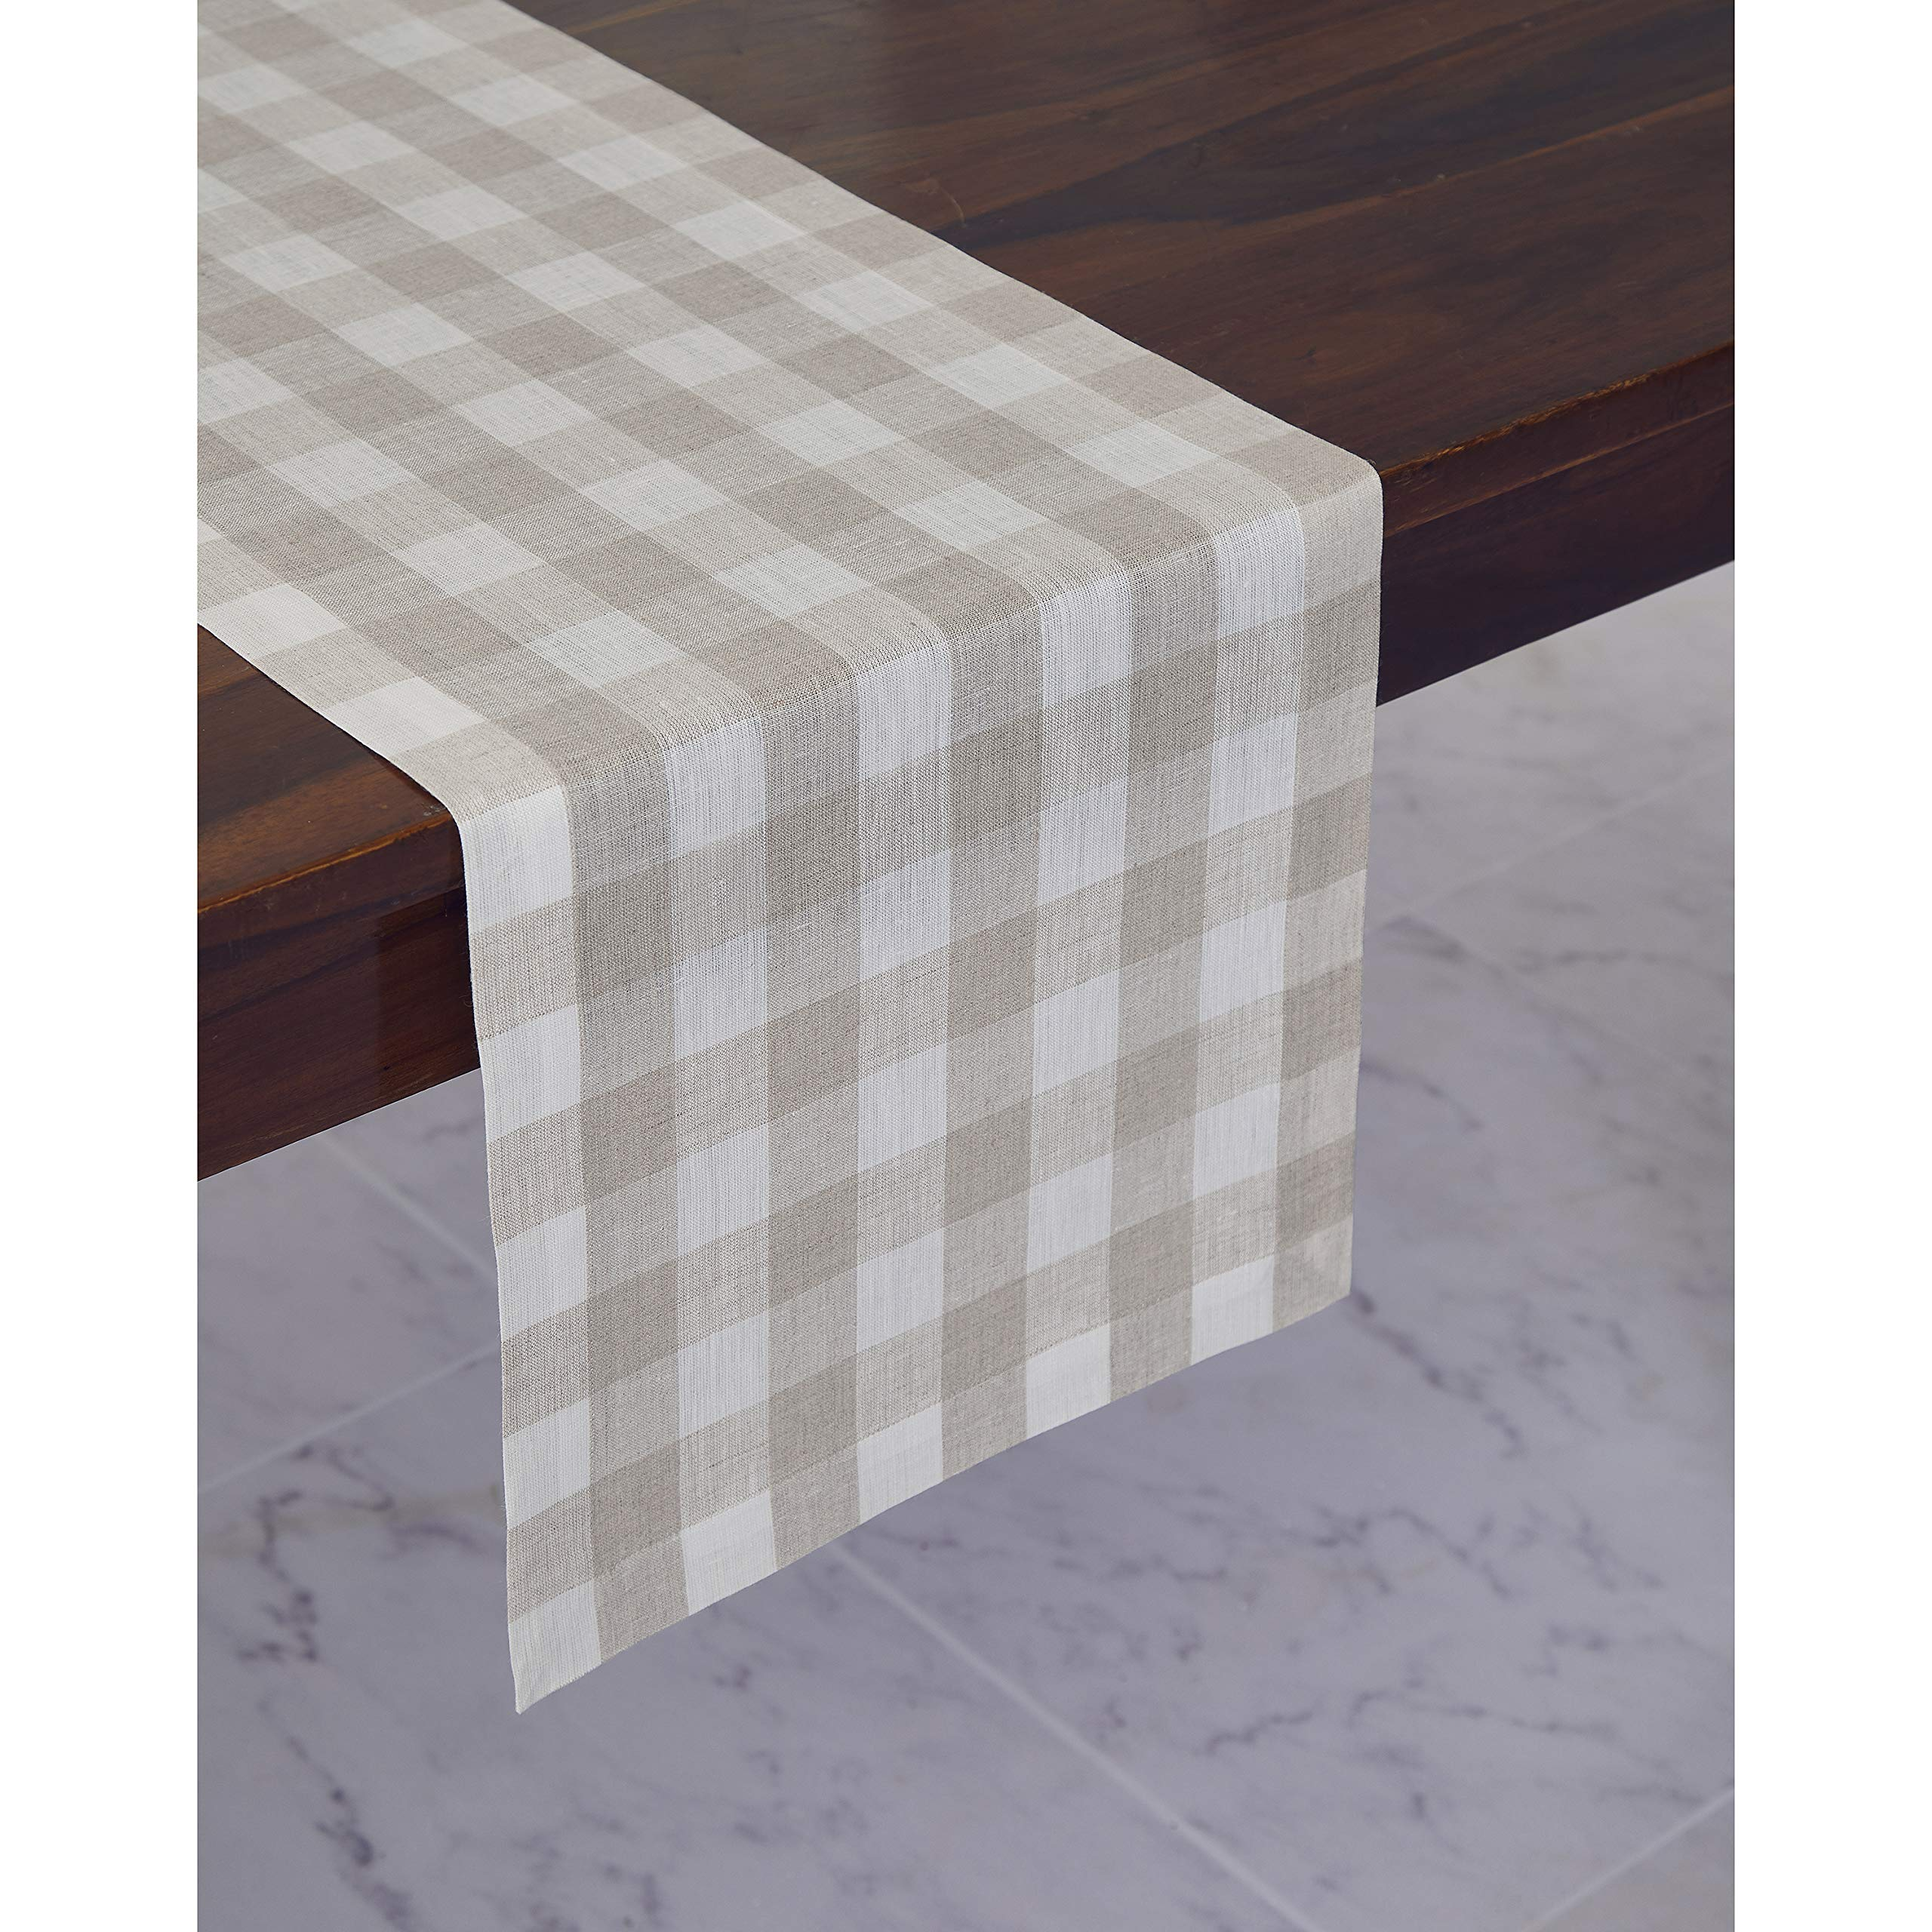 Solino Home 100% Pure Linen Checks Table Runner - Natural & White Check Table Runner - 14 x 72 Inch Runner for Dinner, Indoor and Outdoor Use